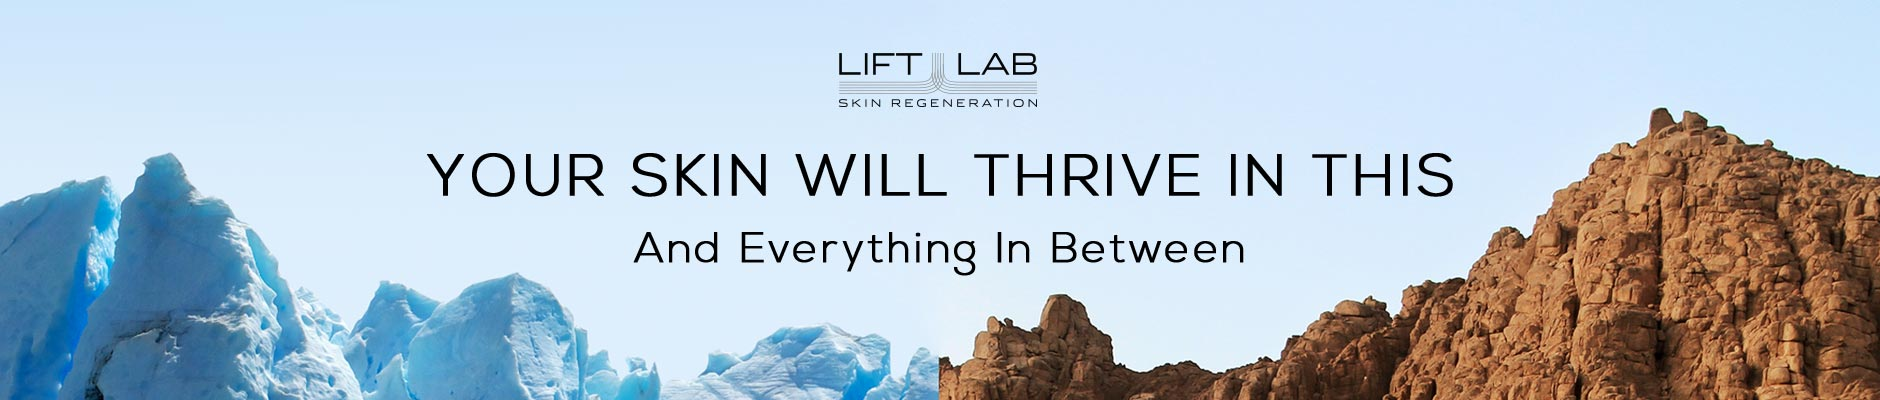 Lift Lab: Your skin will thrive in this - and Everything in Between